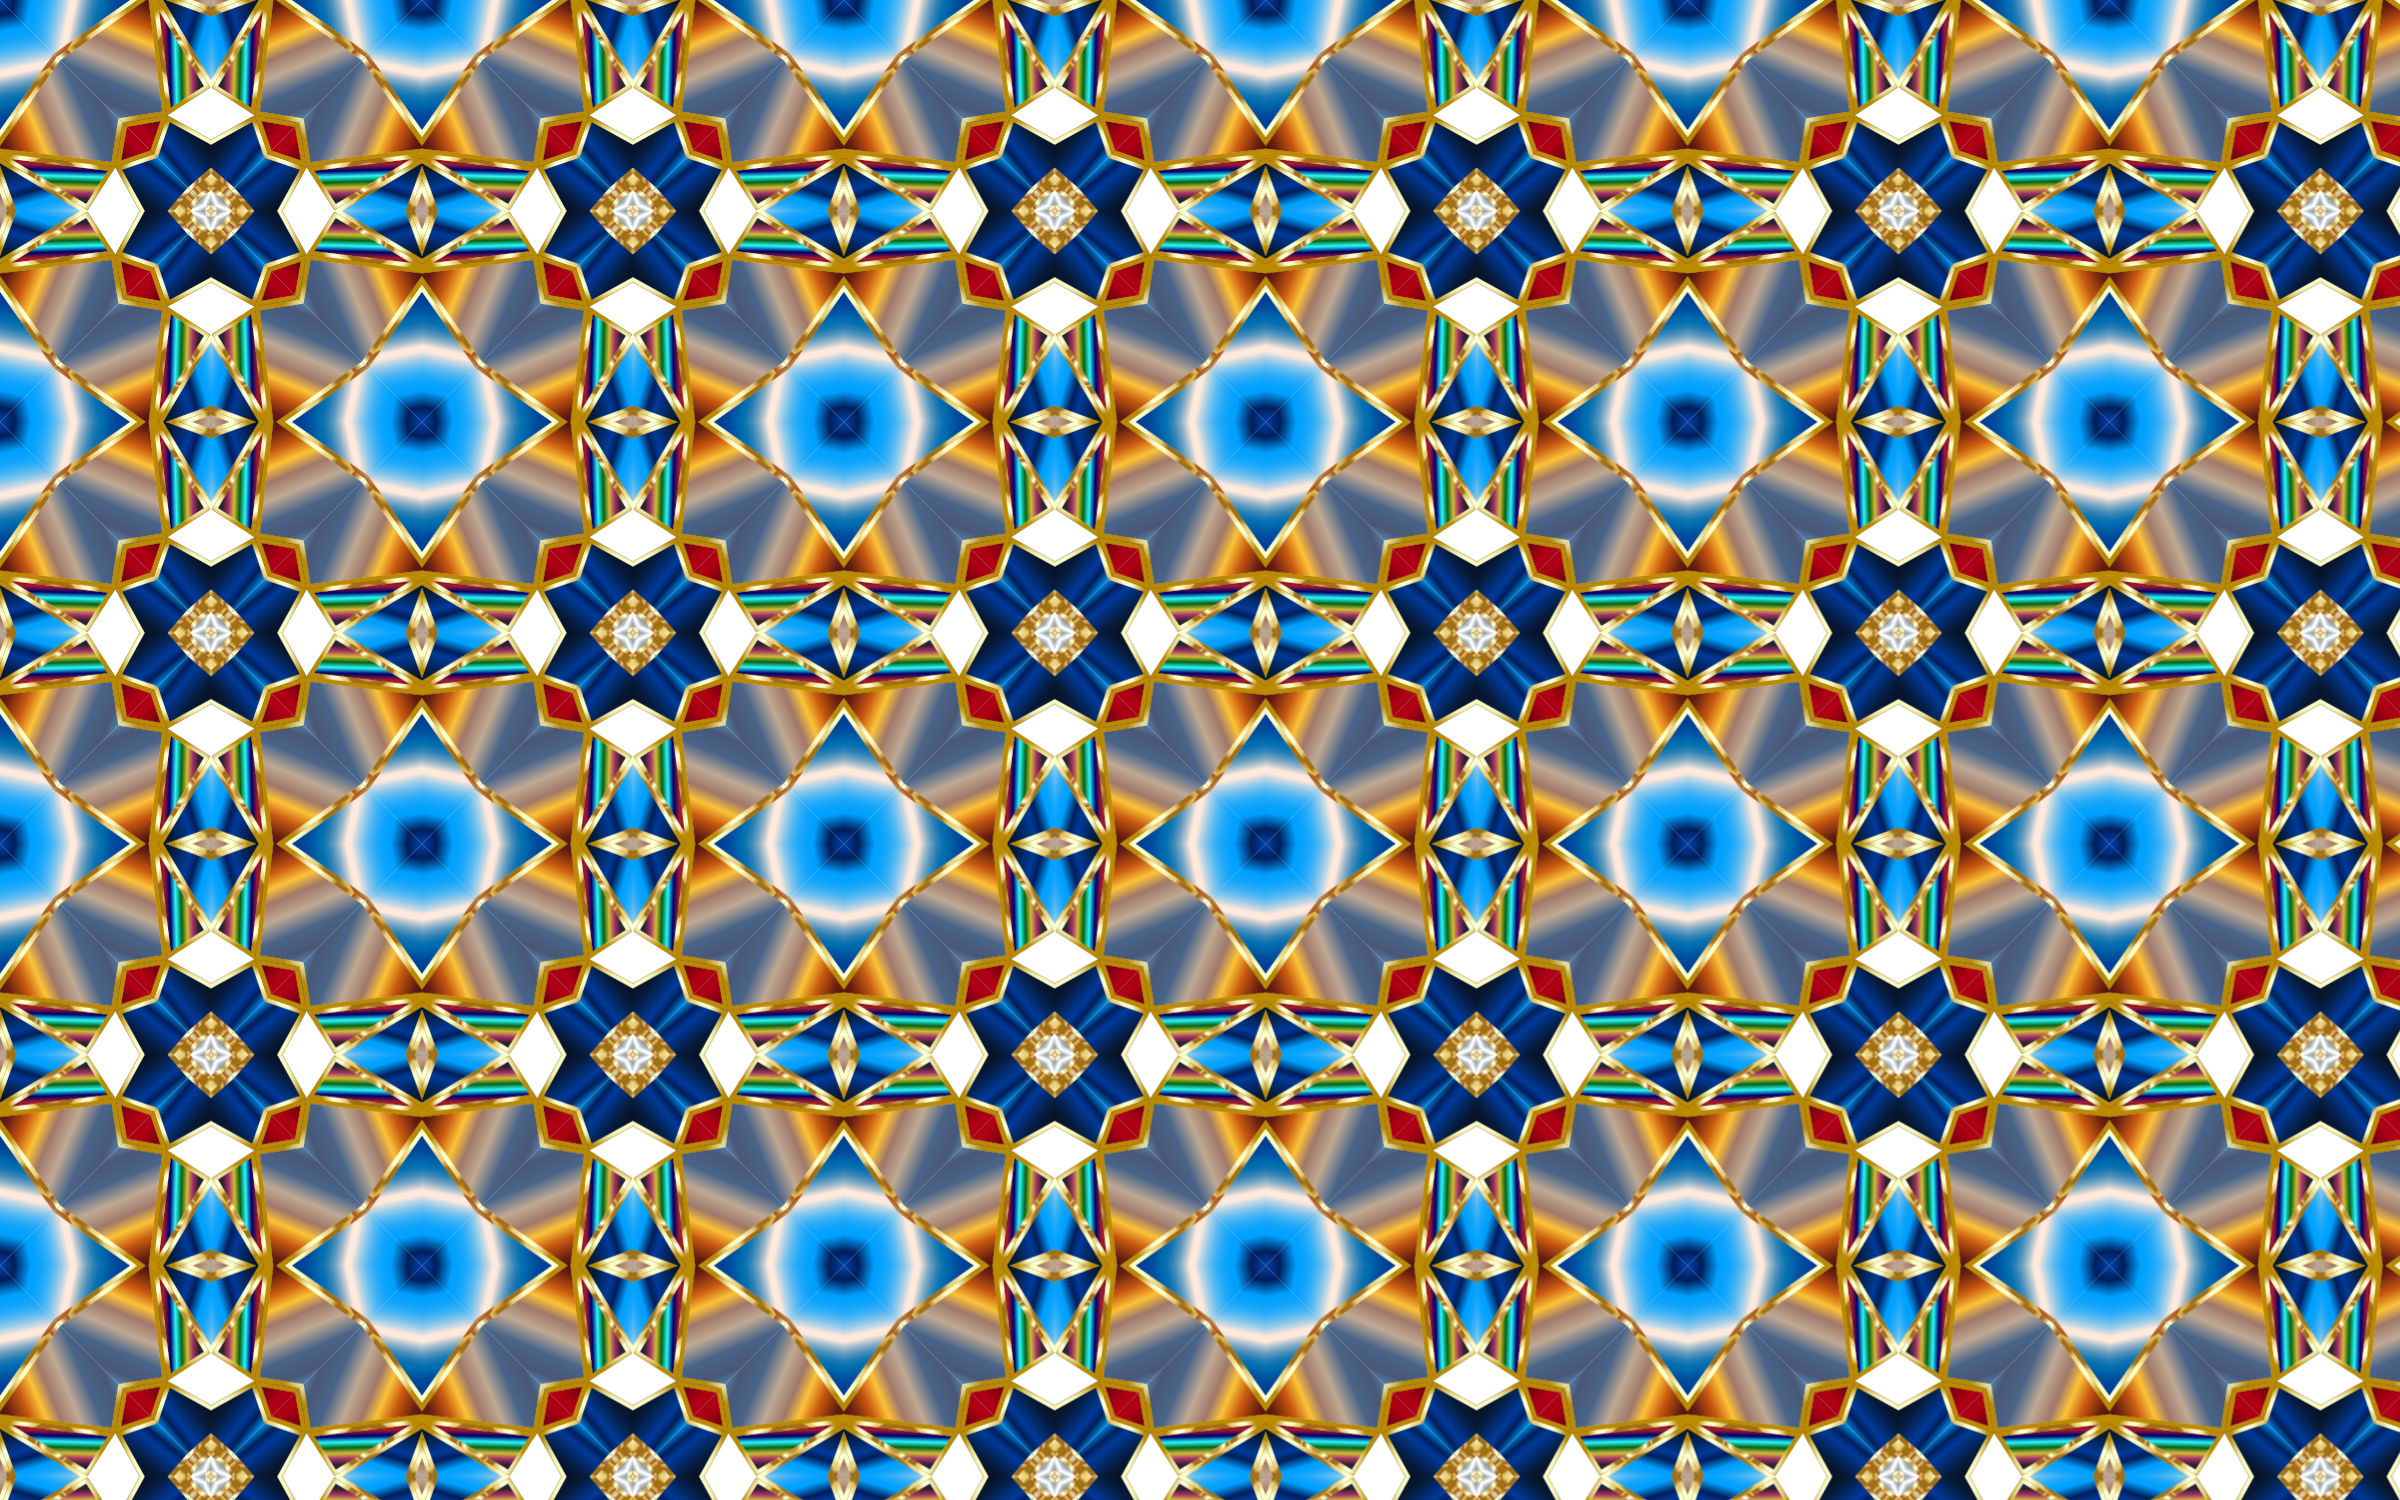 Seamless Pattern 128 by GDJ